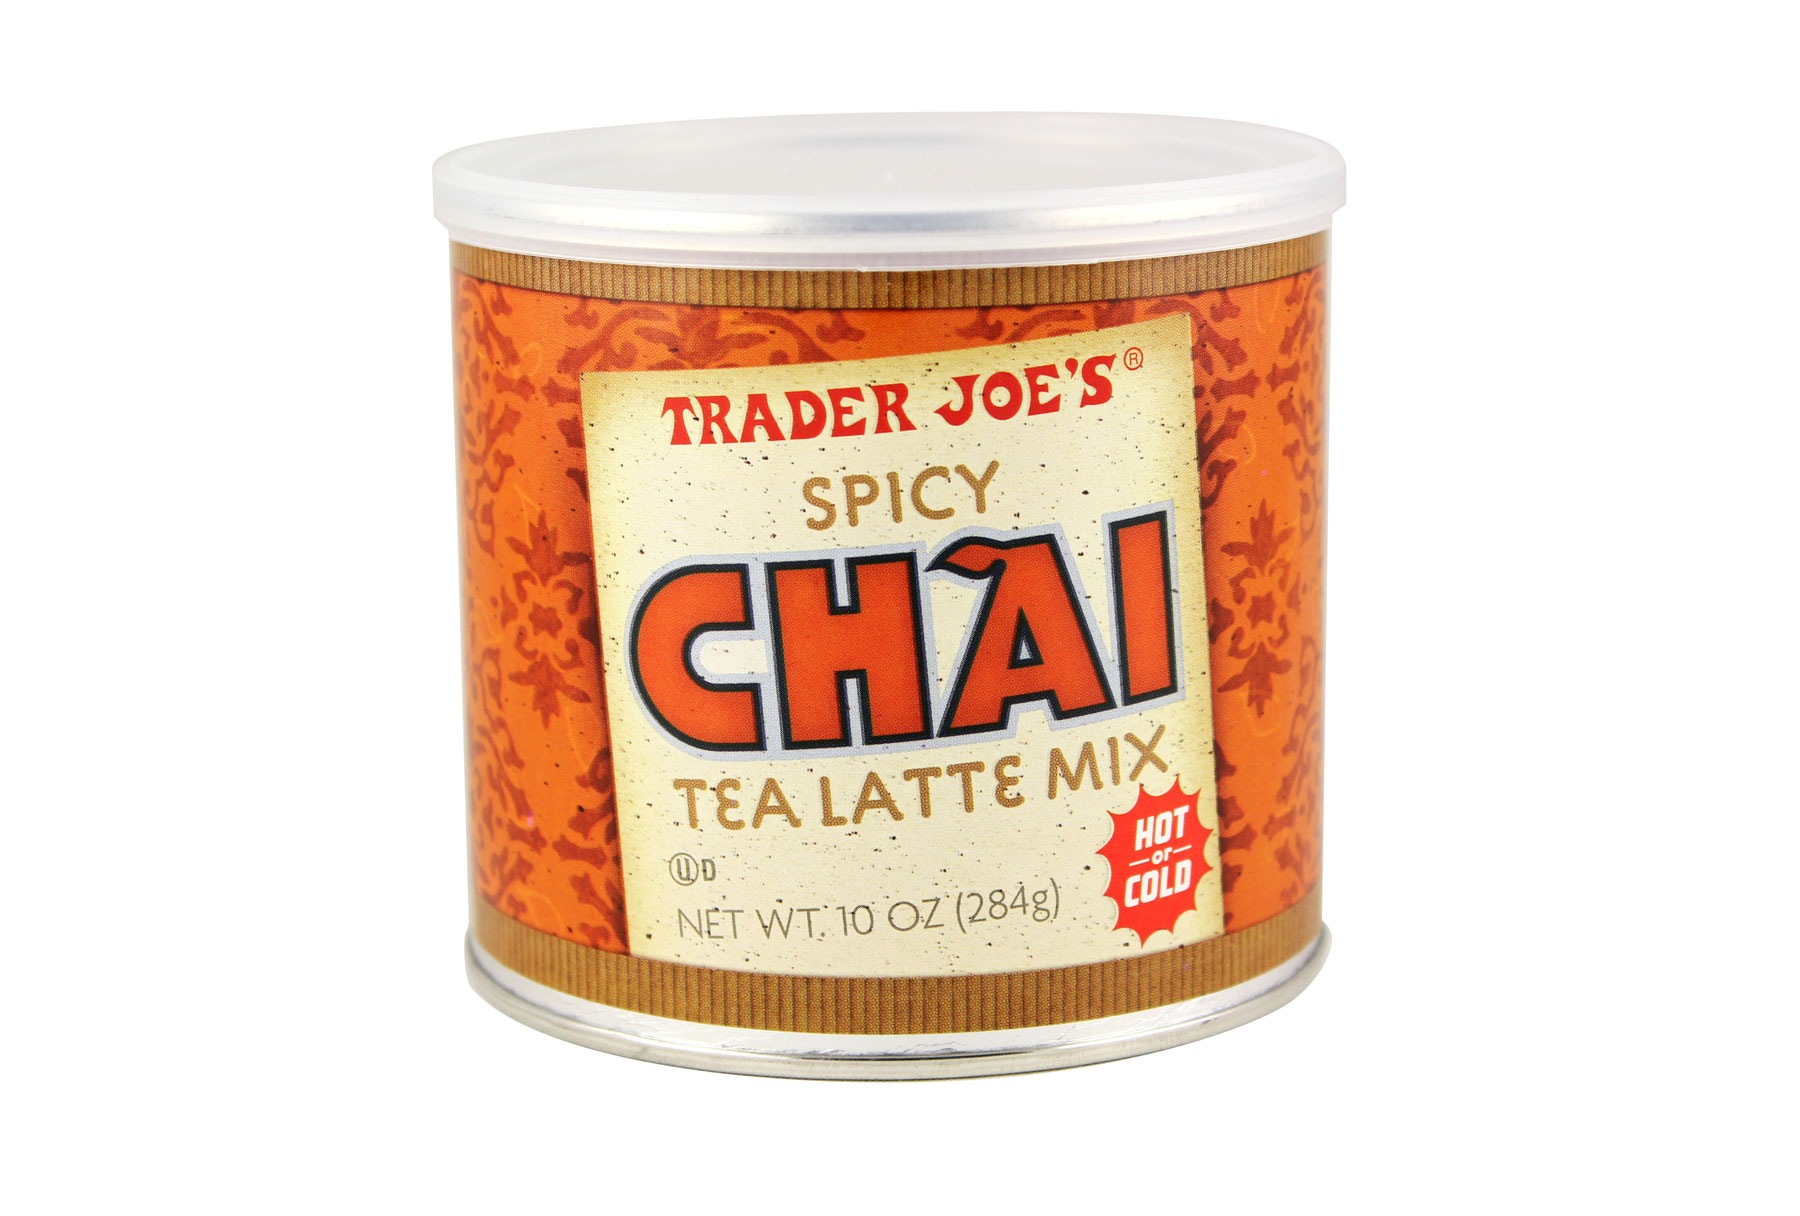 Trader Joe's products/editors' picks - Trader Joe's Spicy Chai Tea Latte Mix and Trader Joe's Spiced Chai Black Tea Liquid Concentrate